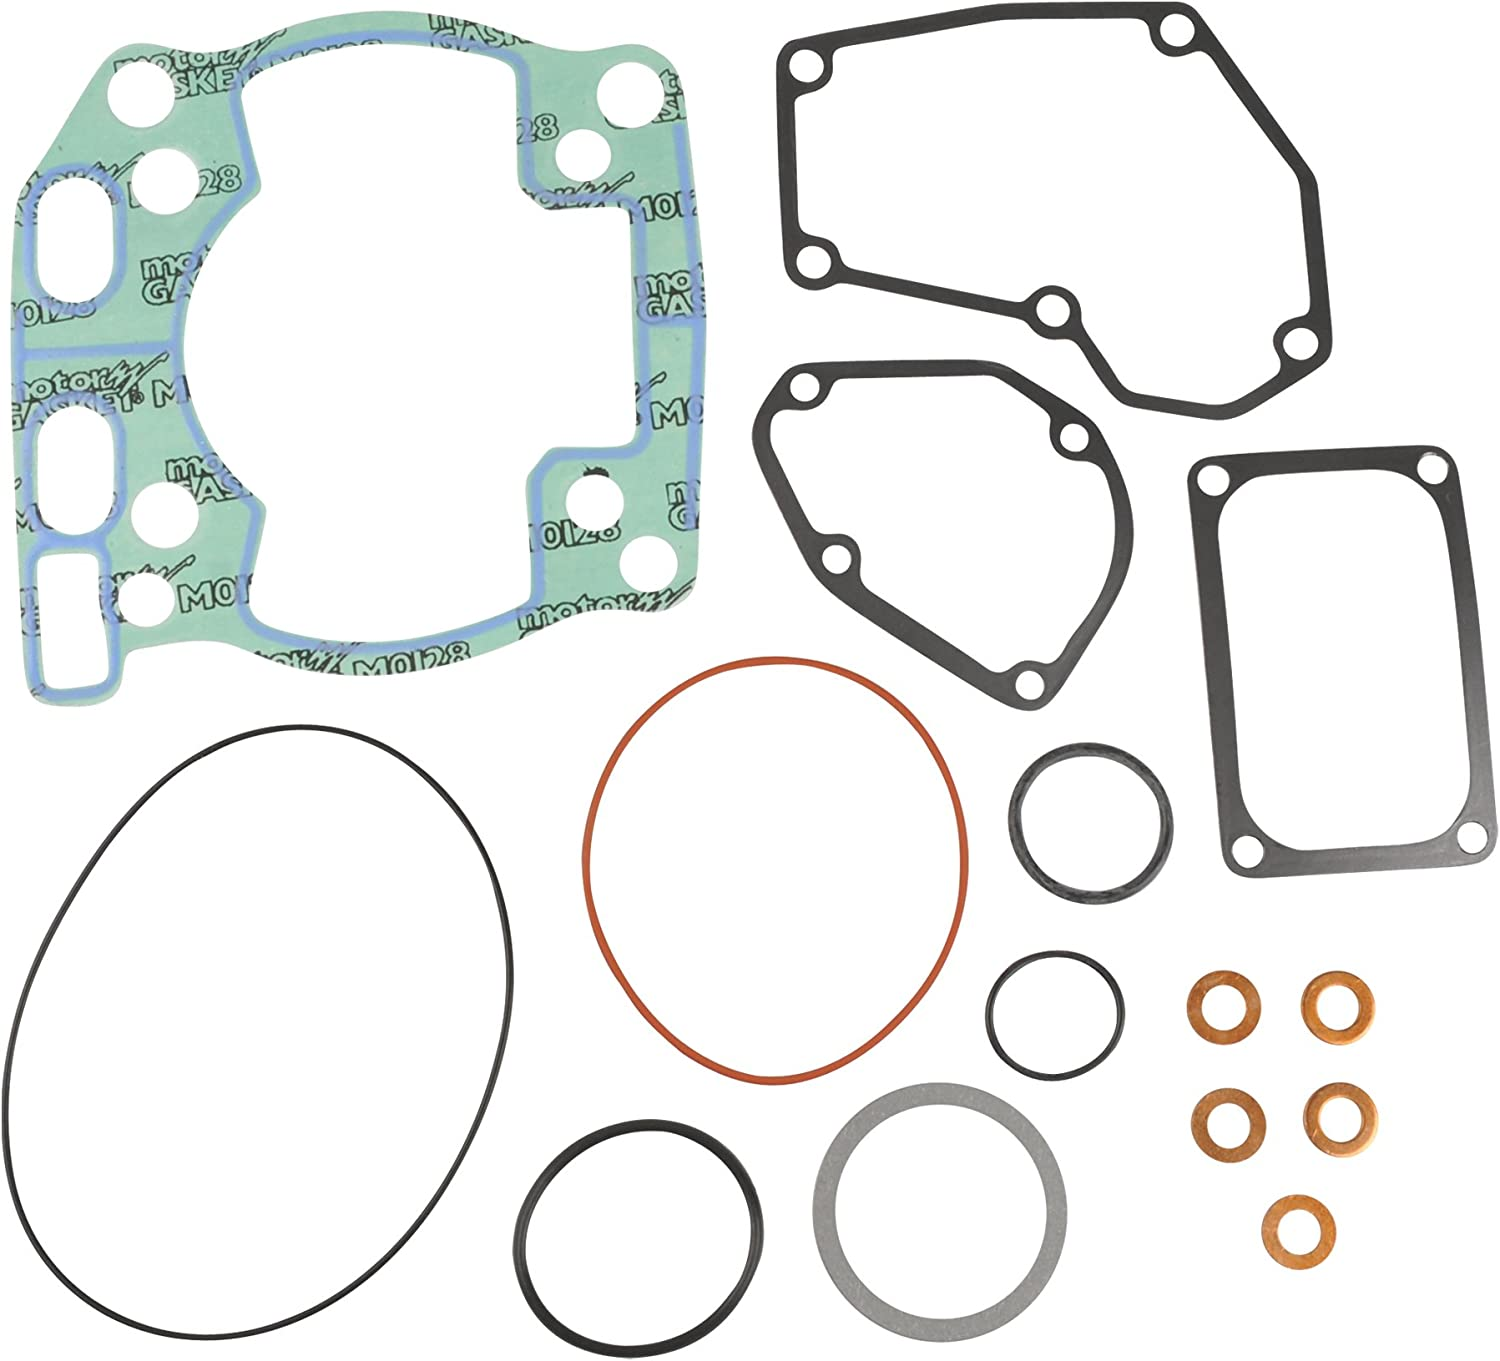 Athena P400510600241 Ranking TOP12 Max 76% OFF Top End Kit Gasket